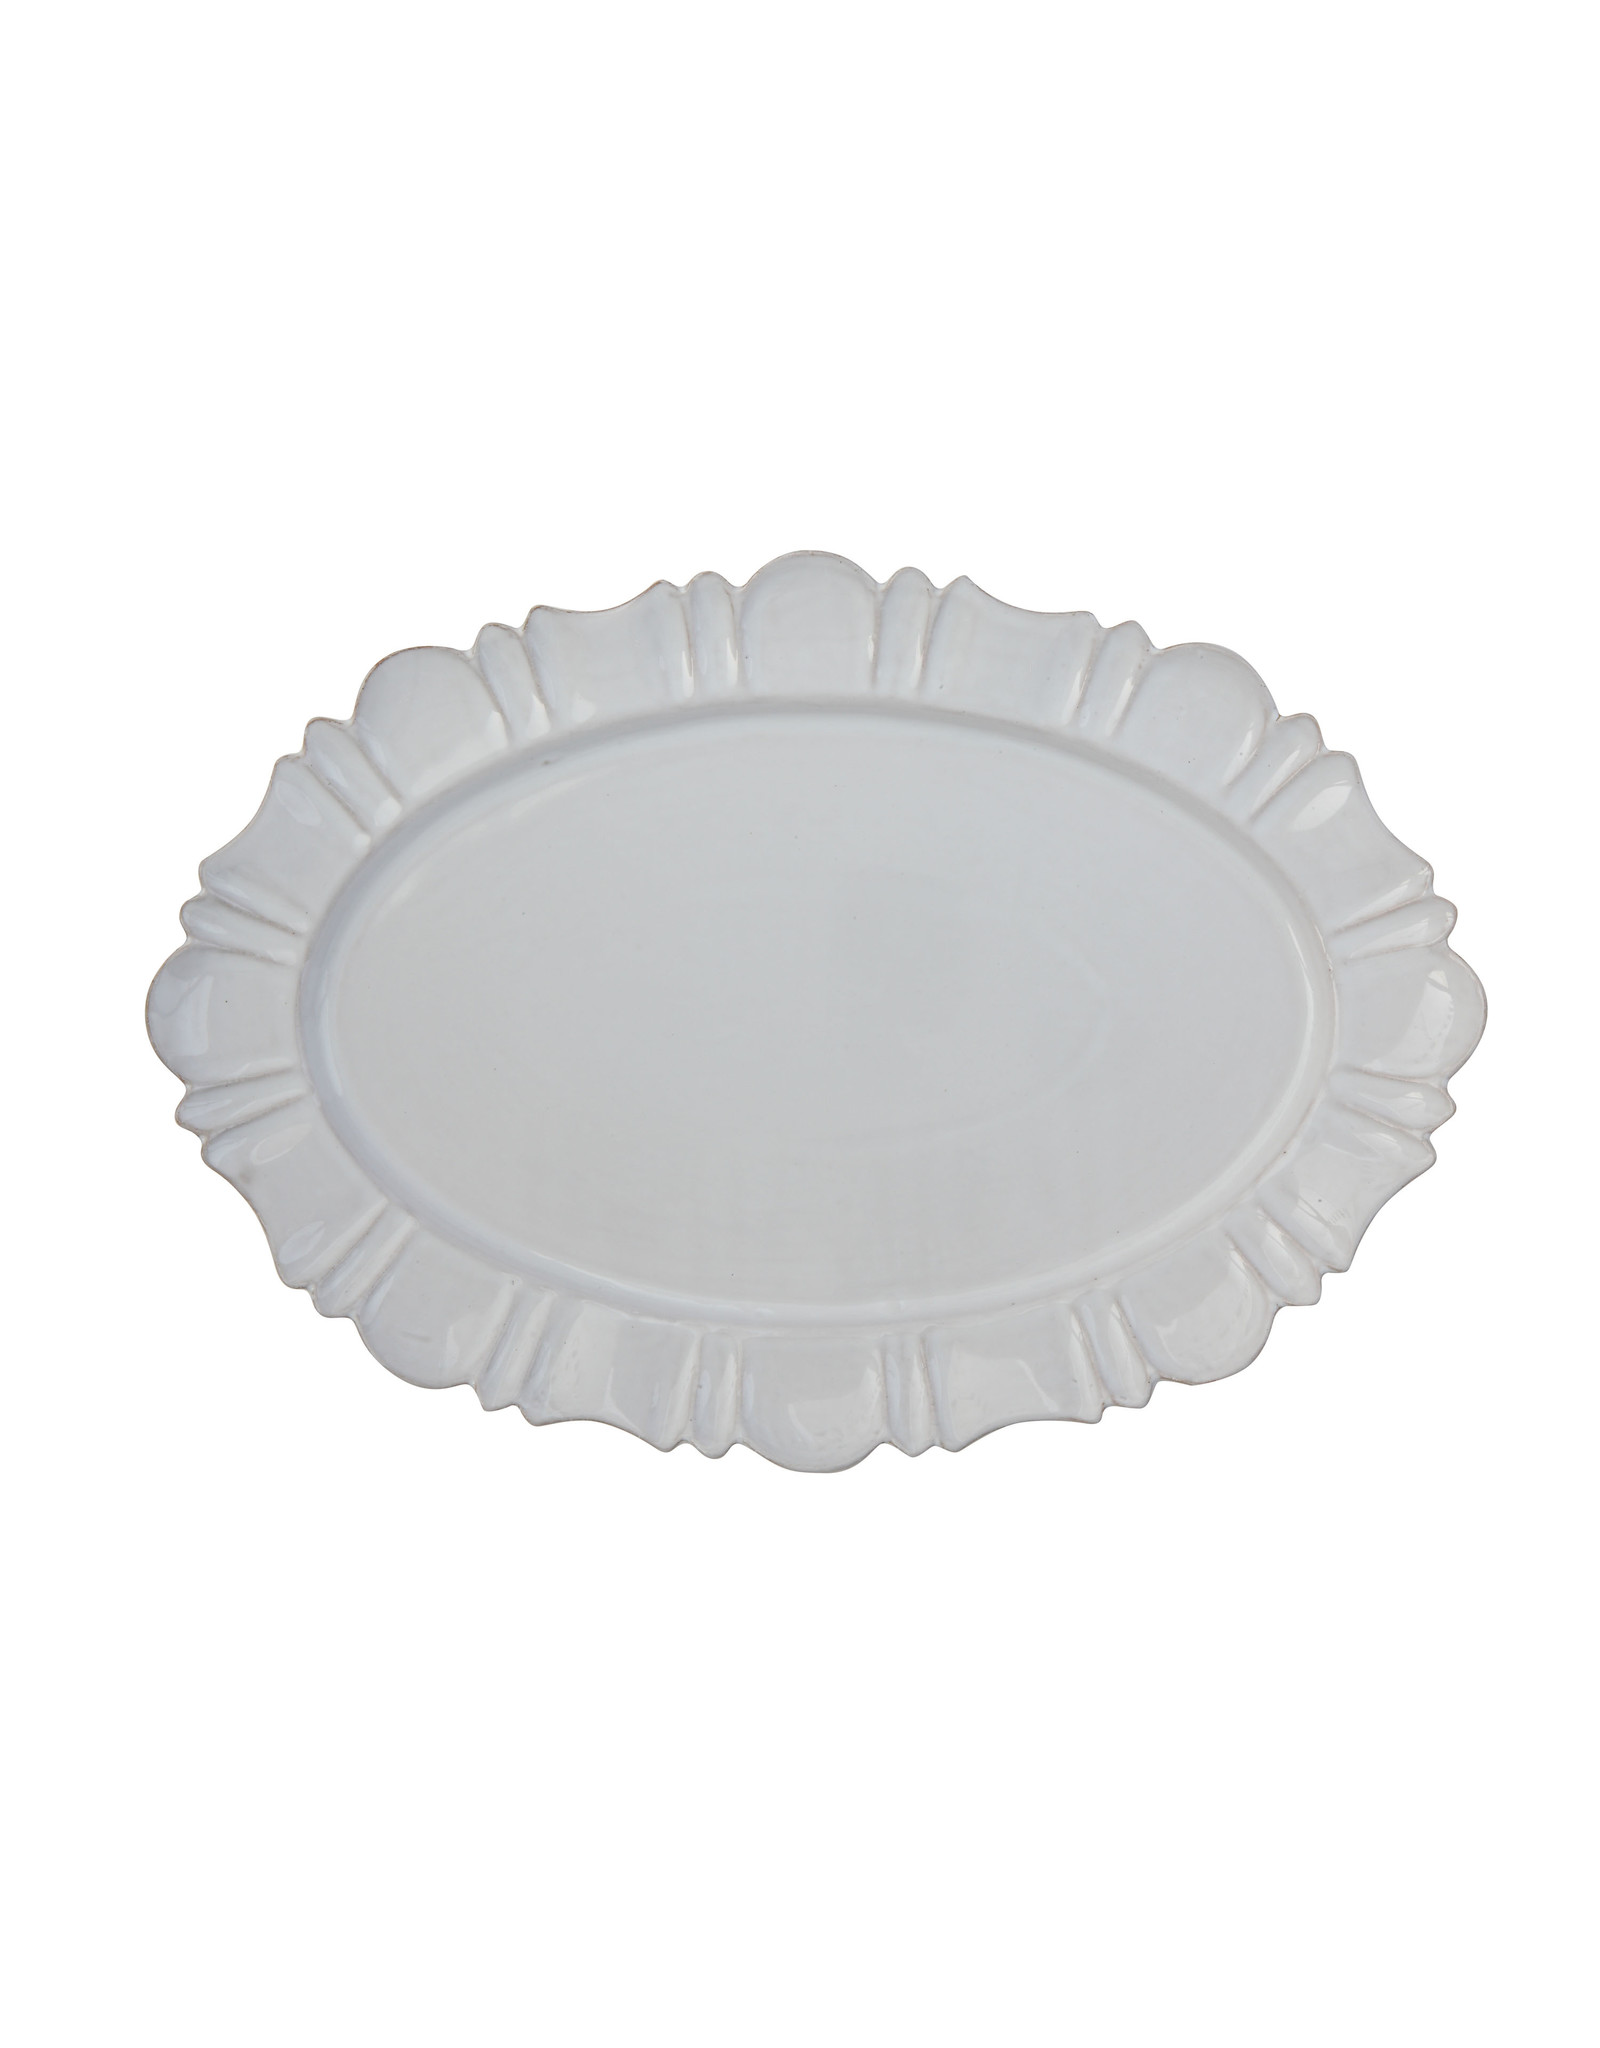 Oval White Terracotta Platter with Decorative Edge